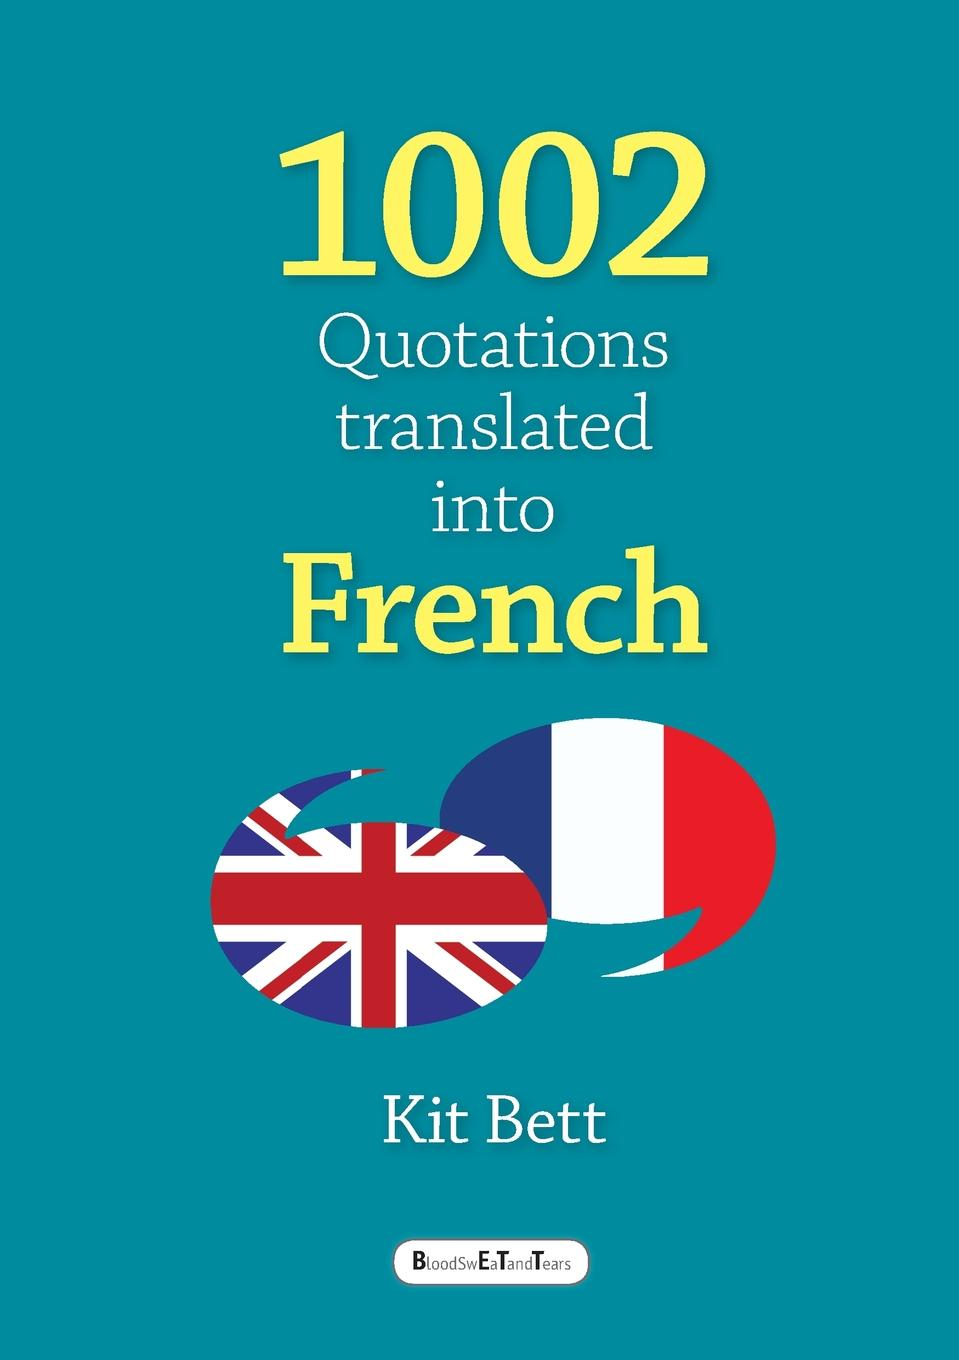 Kit Bett 1002 Quotations translated into French love selected quotations